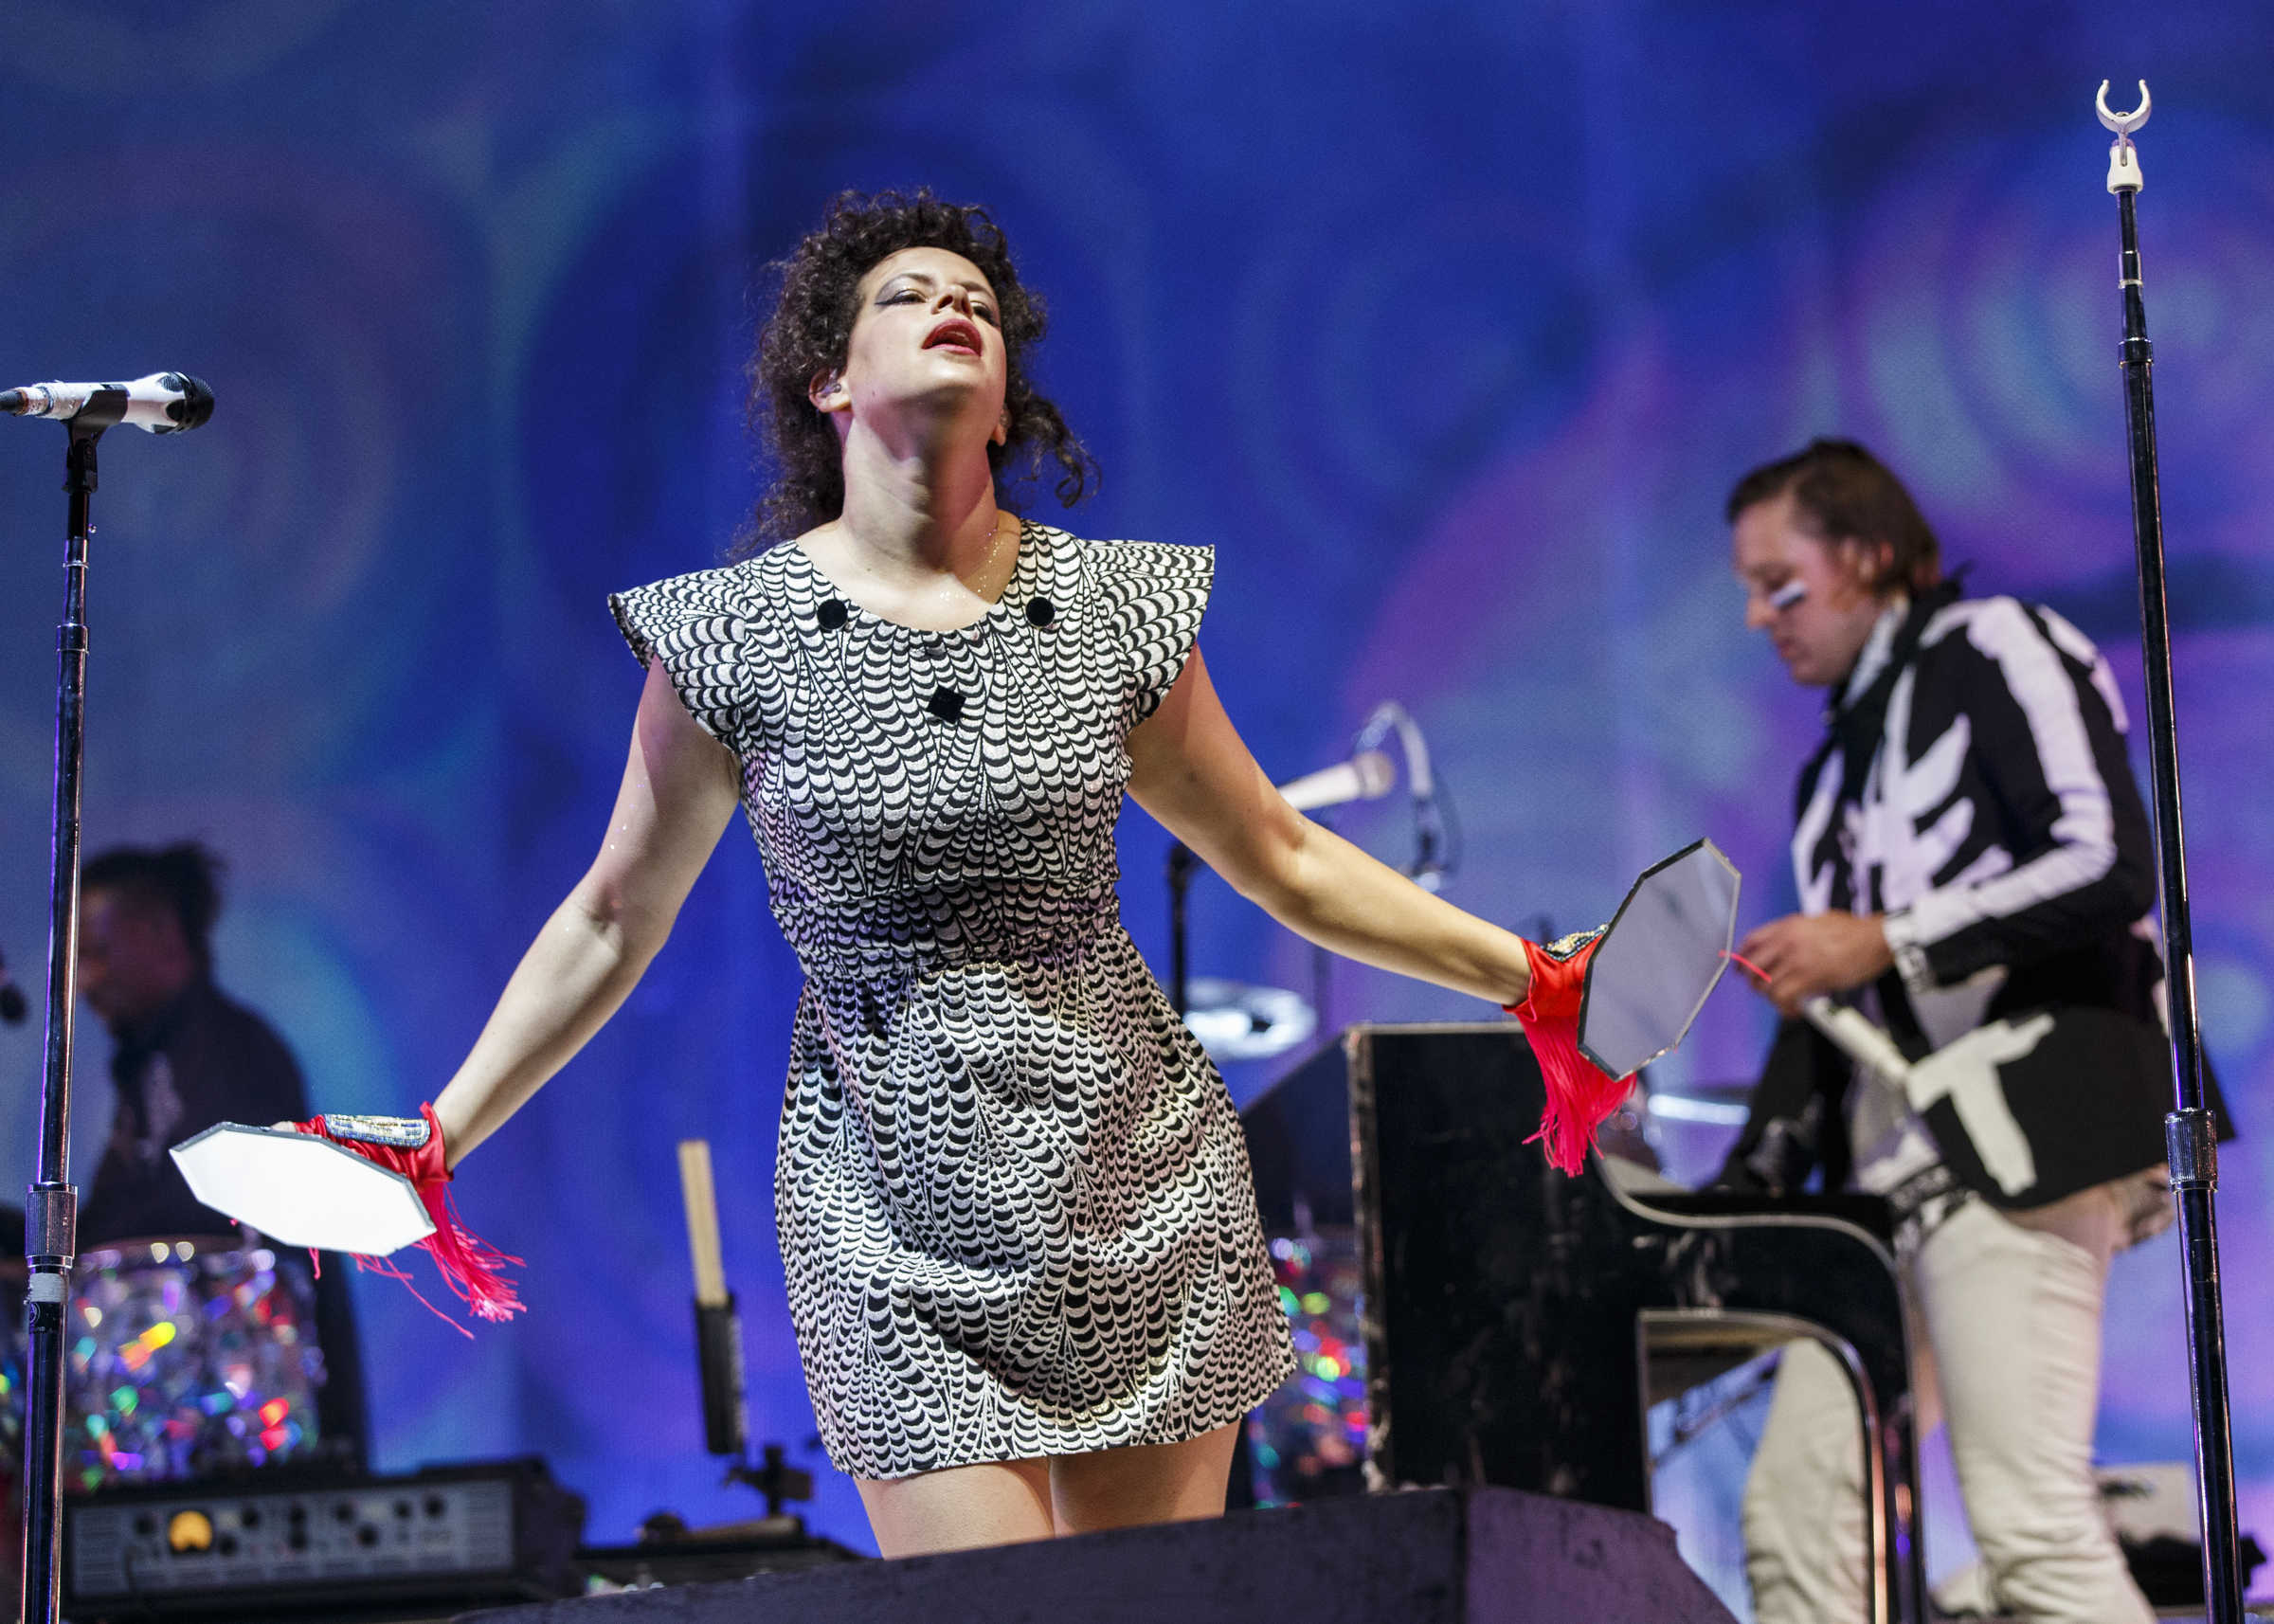 SQUAMISH, BC - AUGUST 09:  Singer Regine Chassagne of Arcade Fire performs on stage during Day 2 of Squamish Valley Music Fes